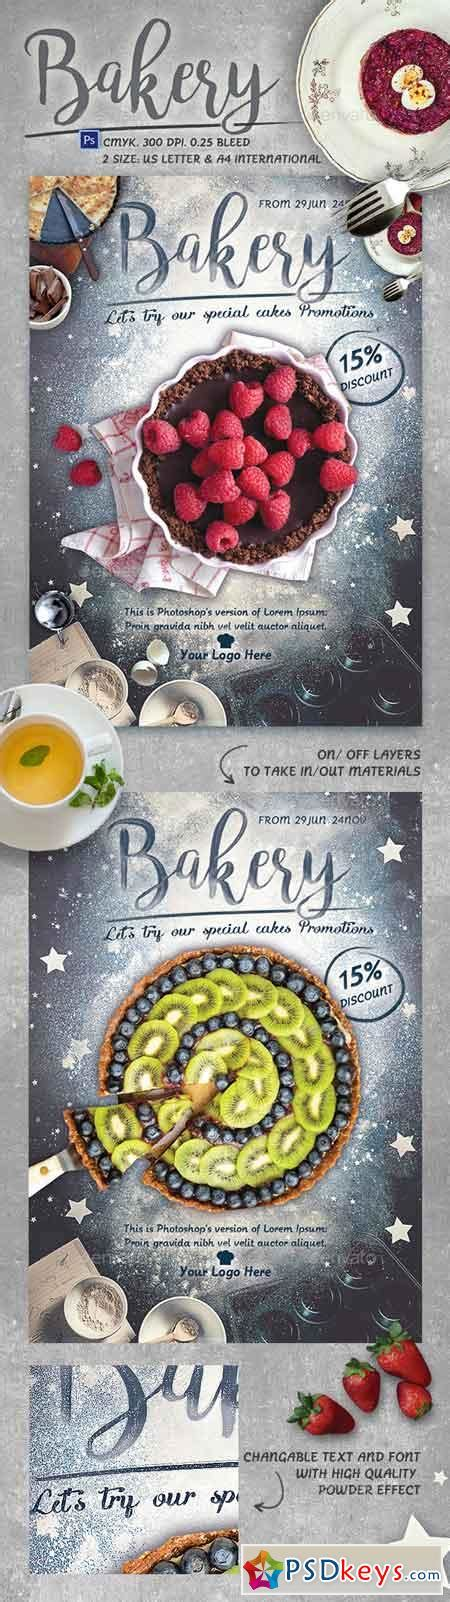 free bakery flyer templates bakery promotion flyer template 15854476 187 free